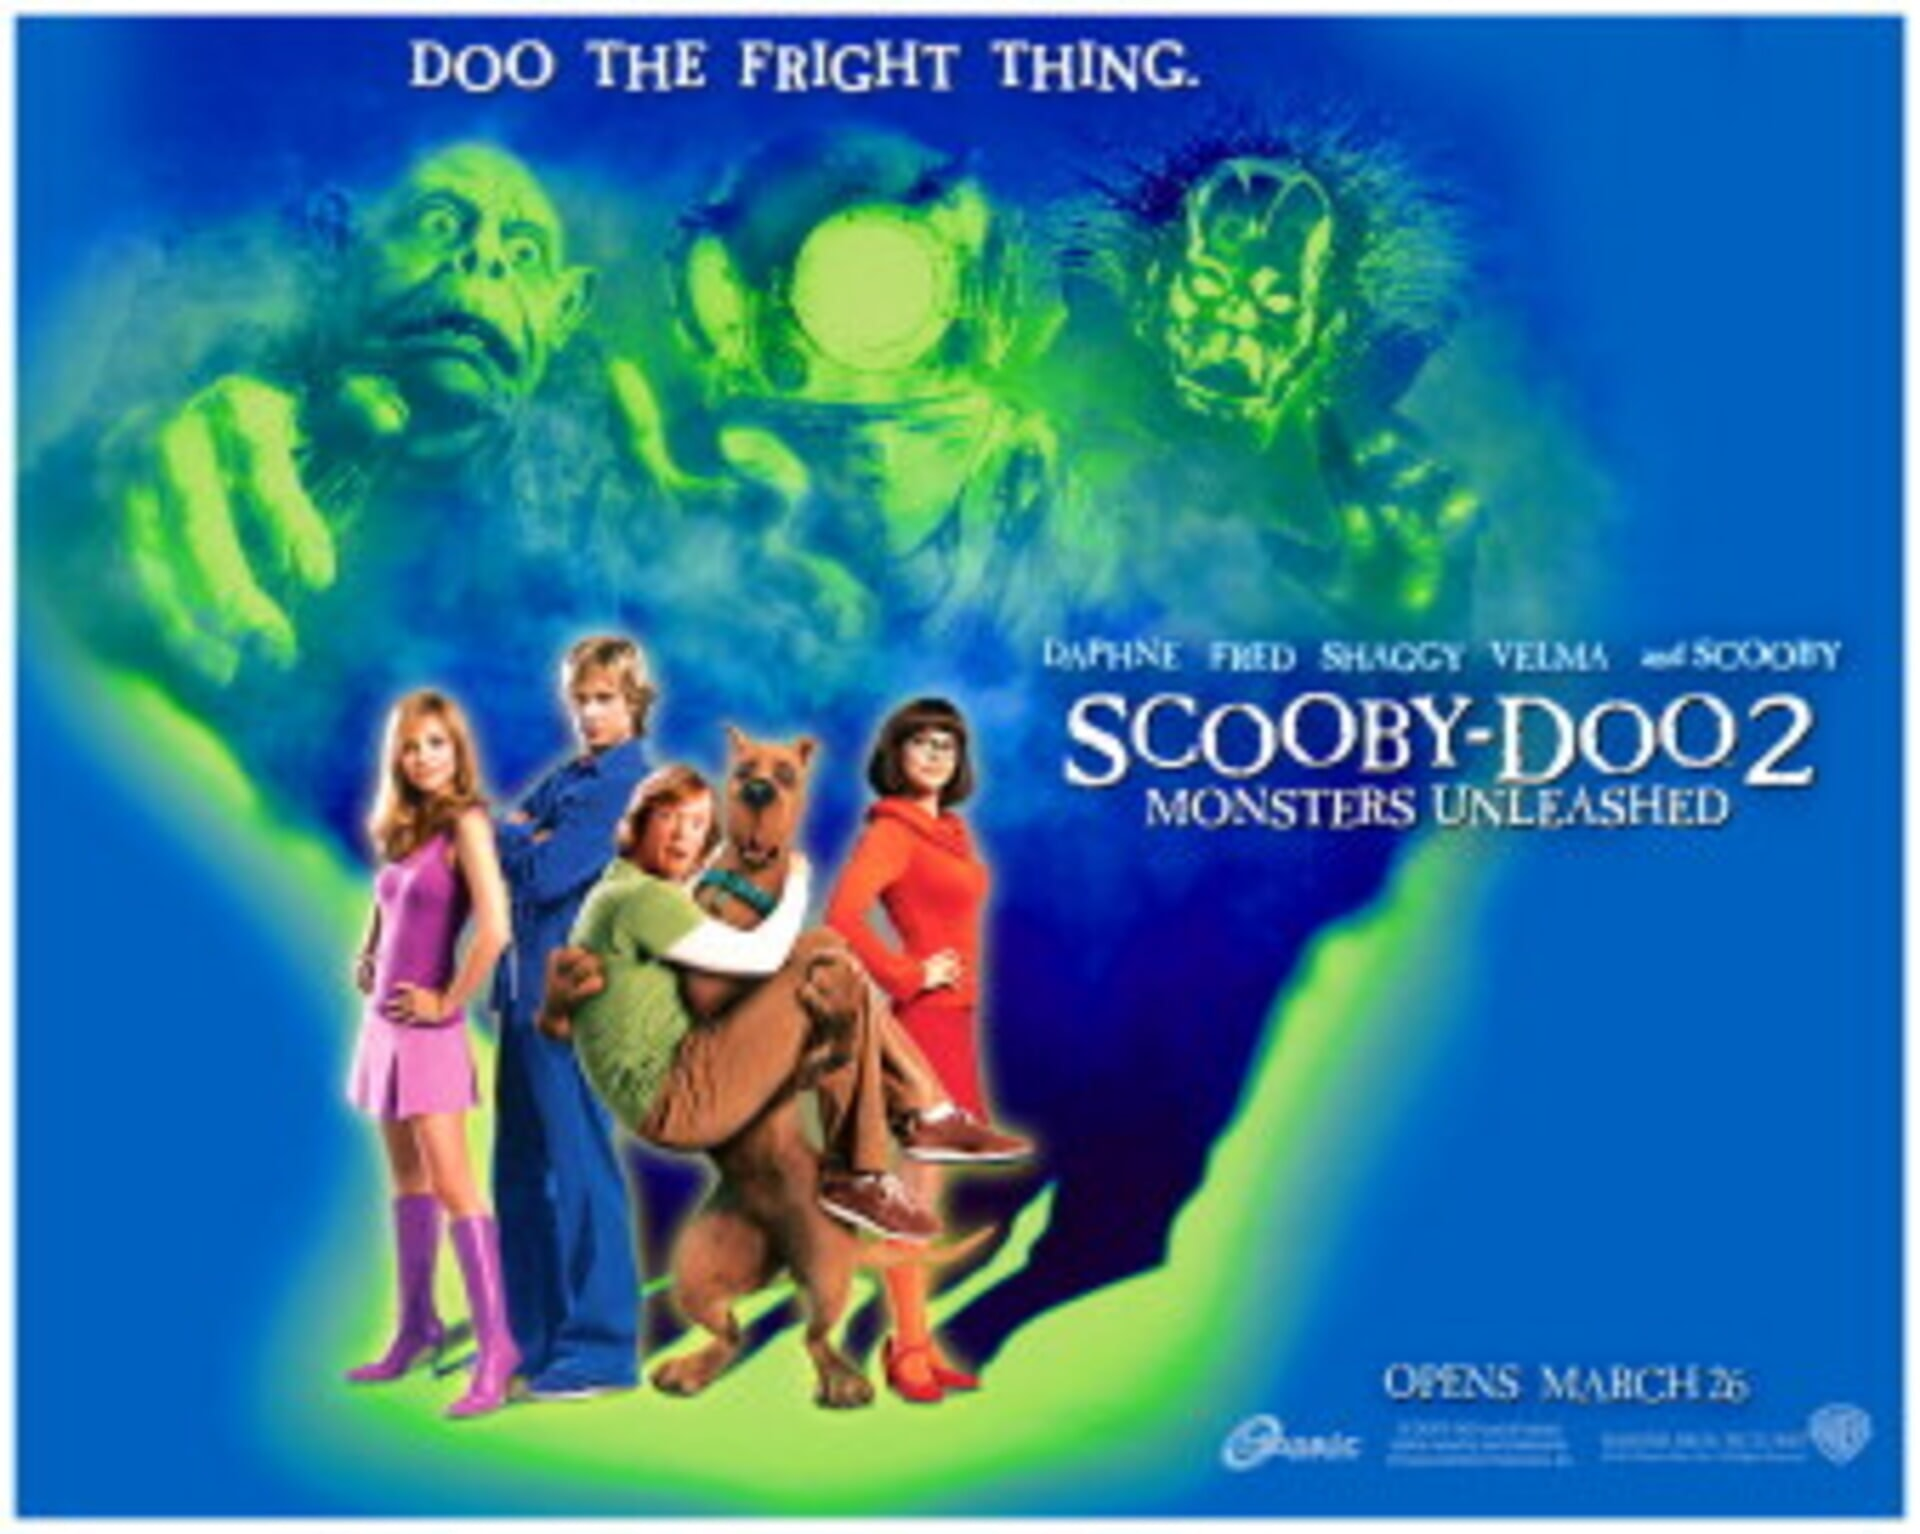 Scooby-doo 2: Monsters Unleashed - Image 6